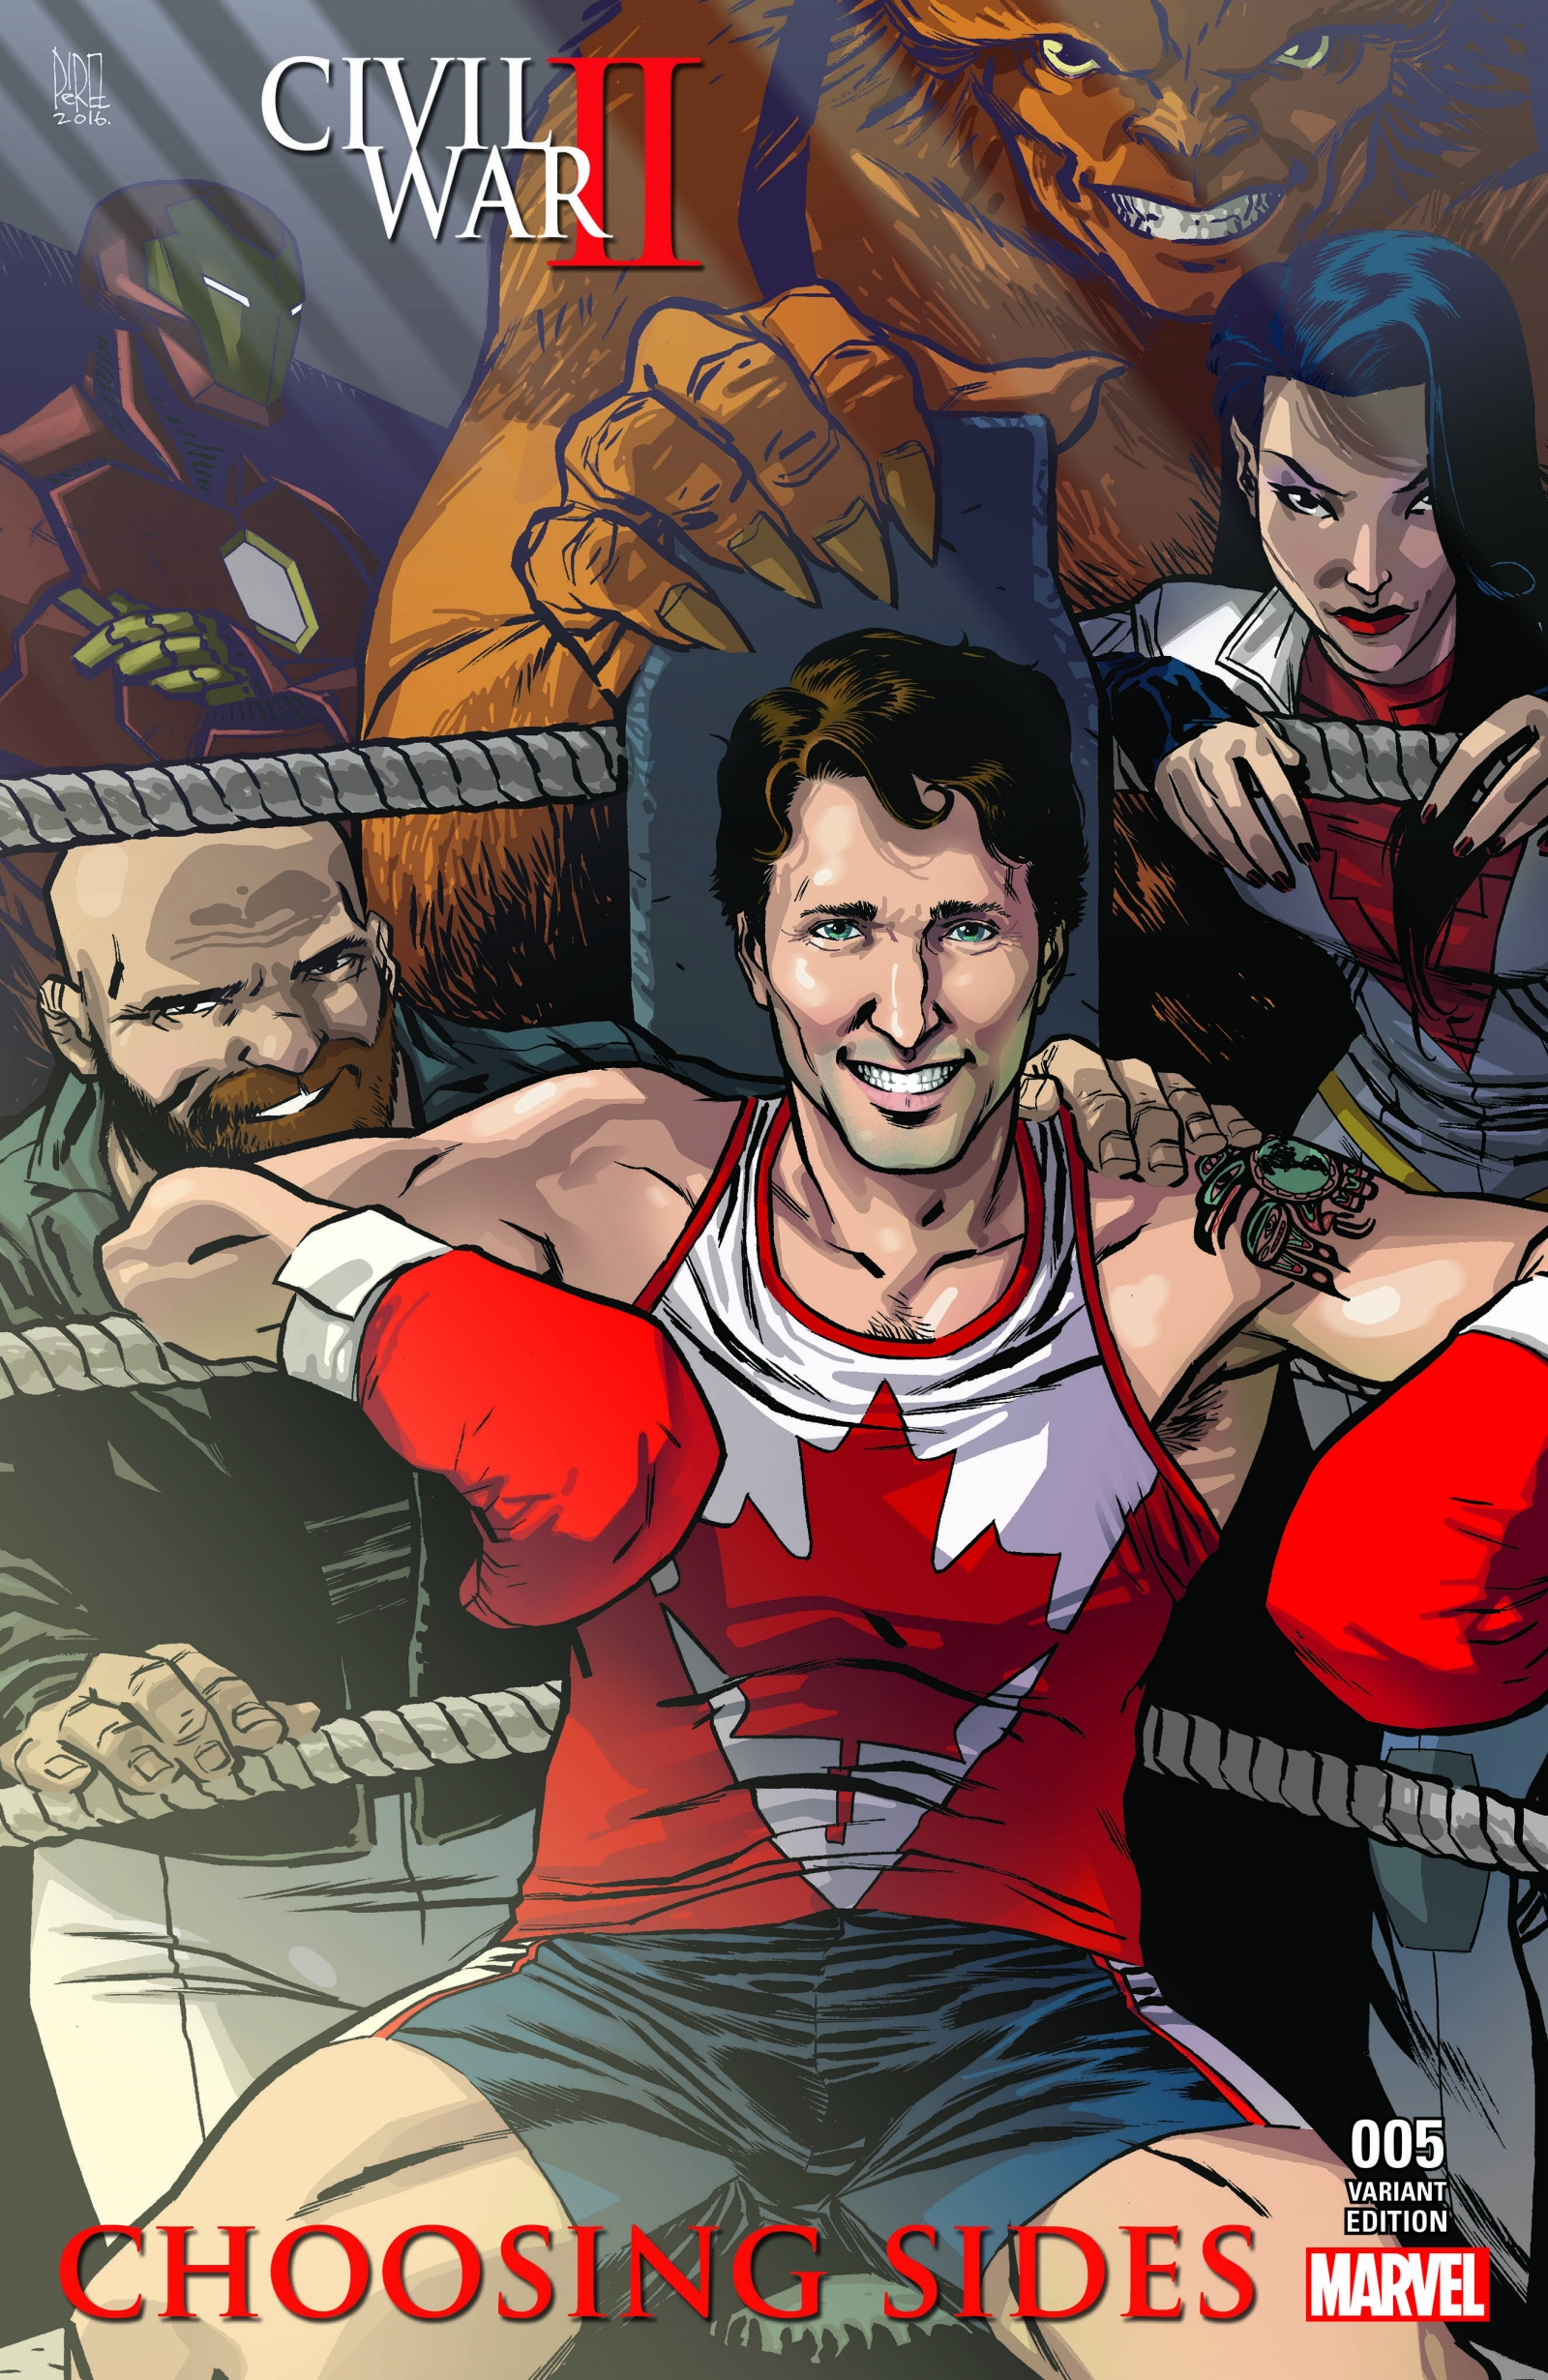 Justin Trudeau on comic book cover